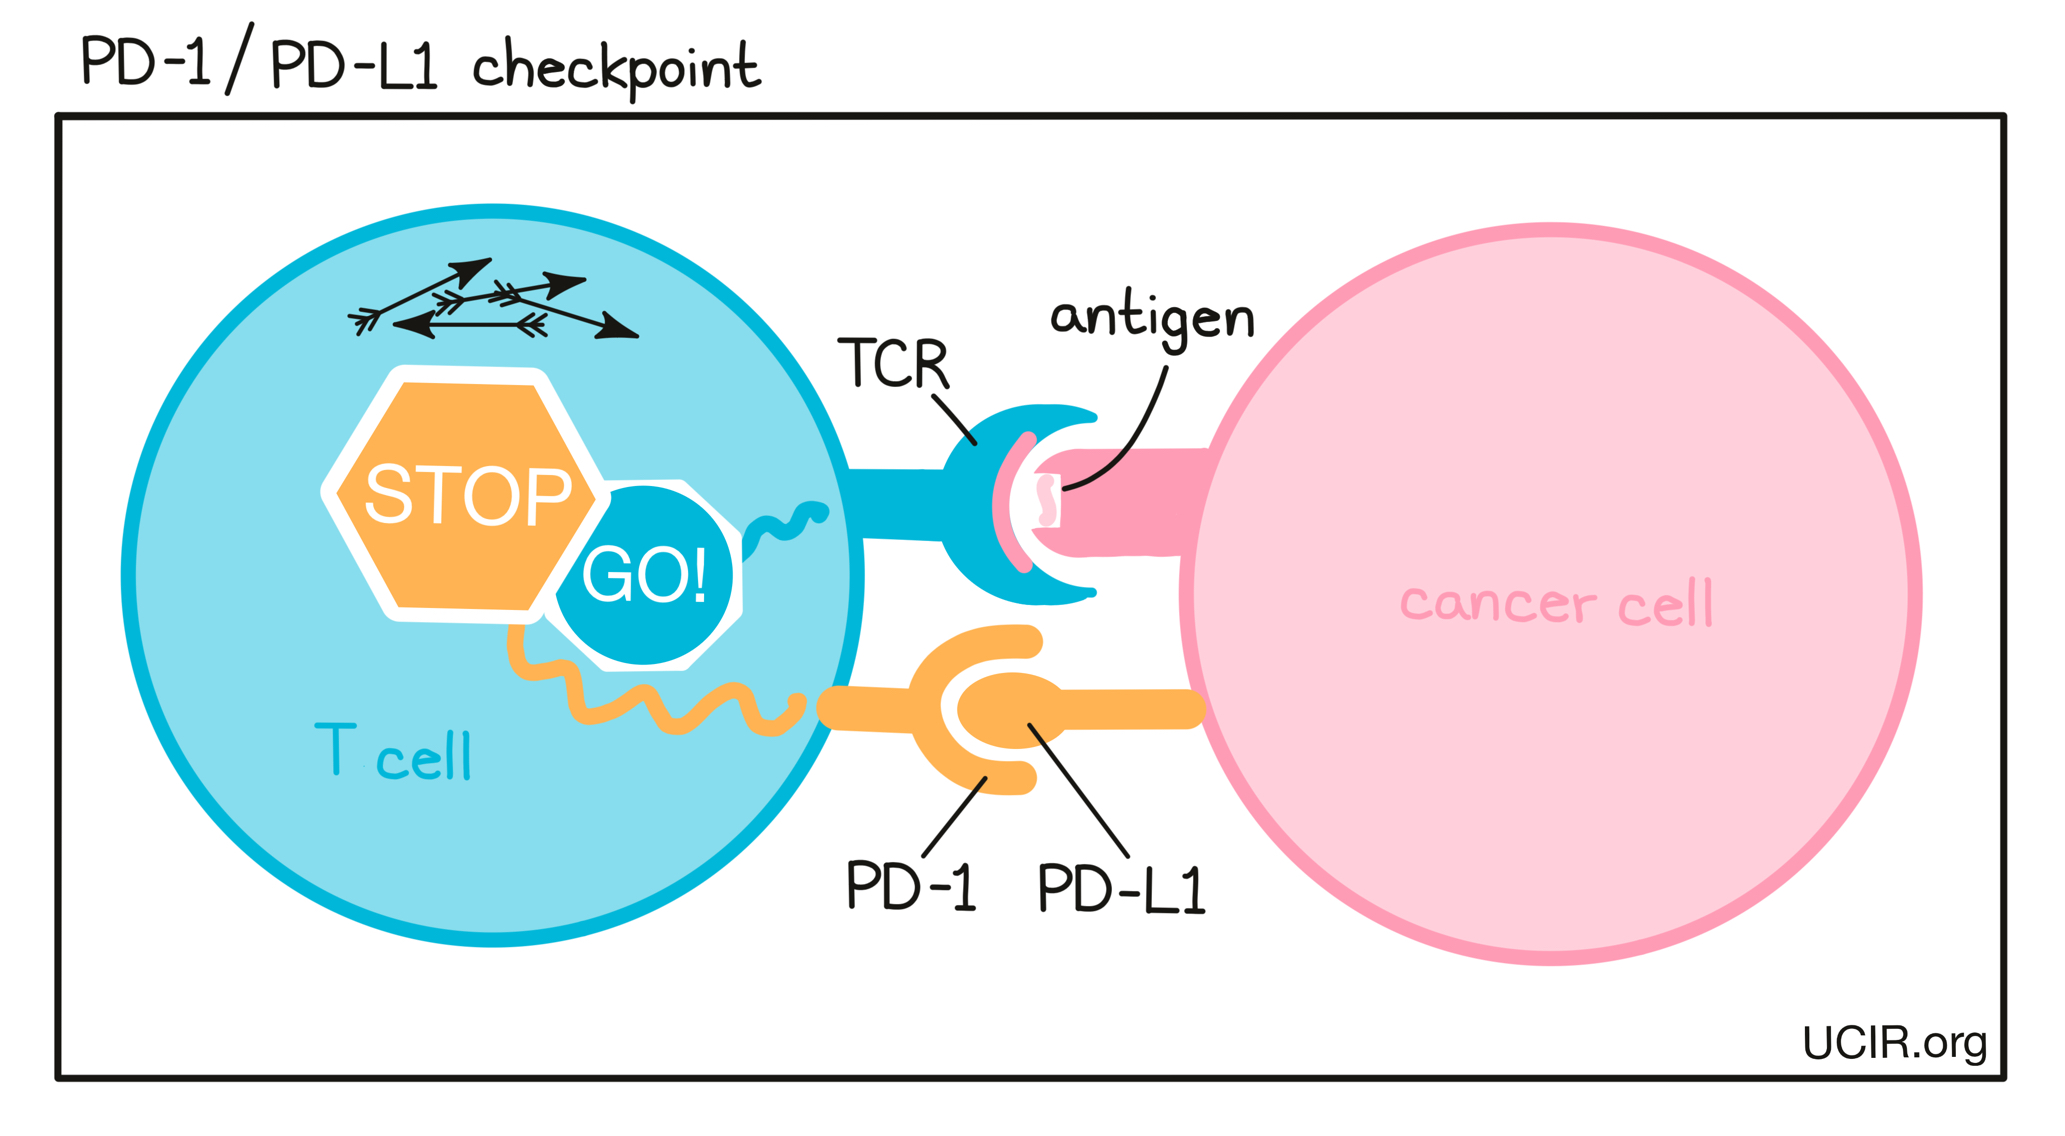 PD-1/PD-L1 checkpoint illustration